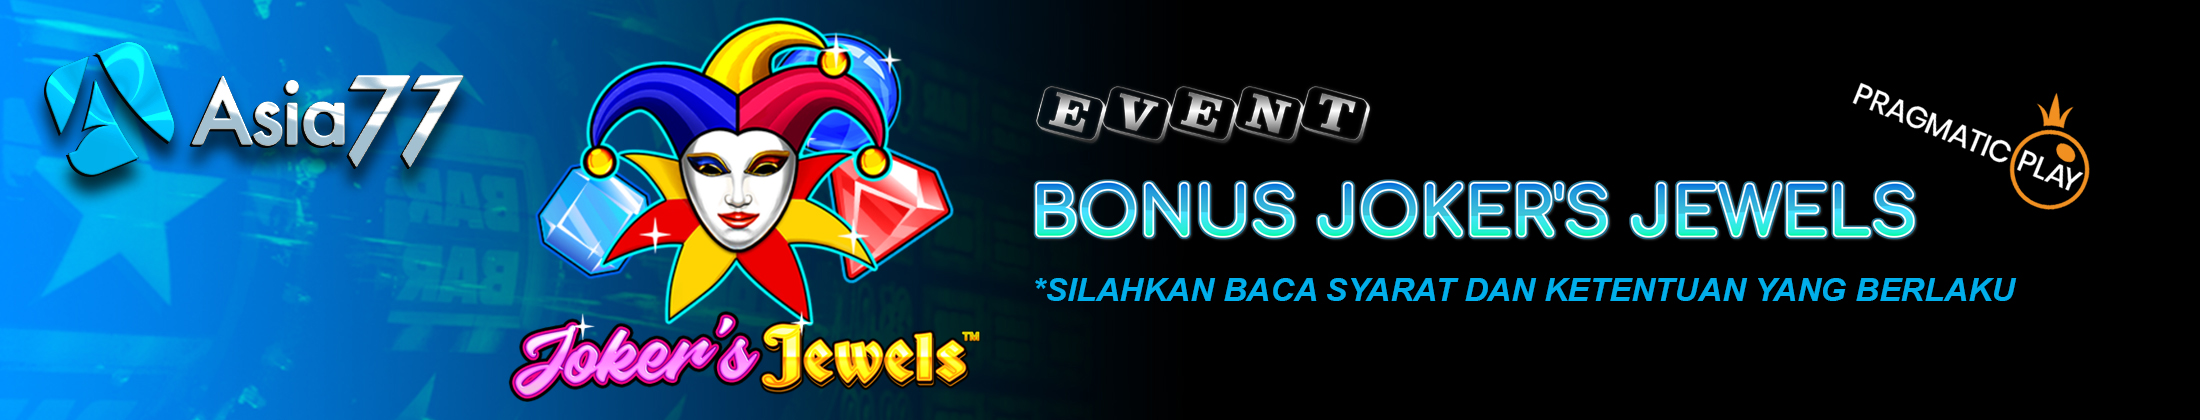 EVENT JOKERS JEWEL PRAGAMTIC PLAY